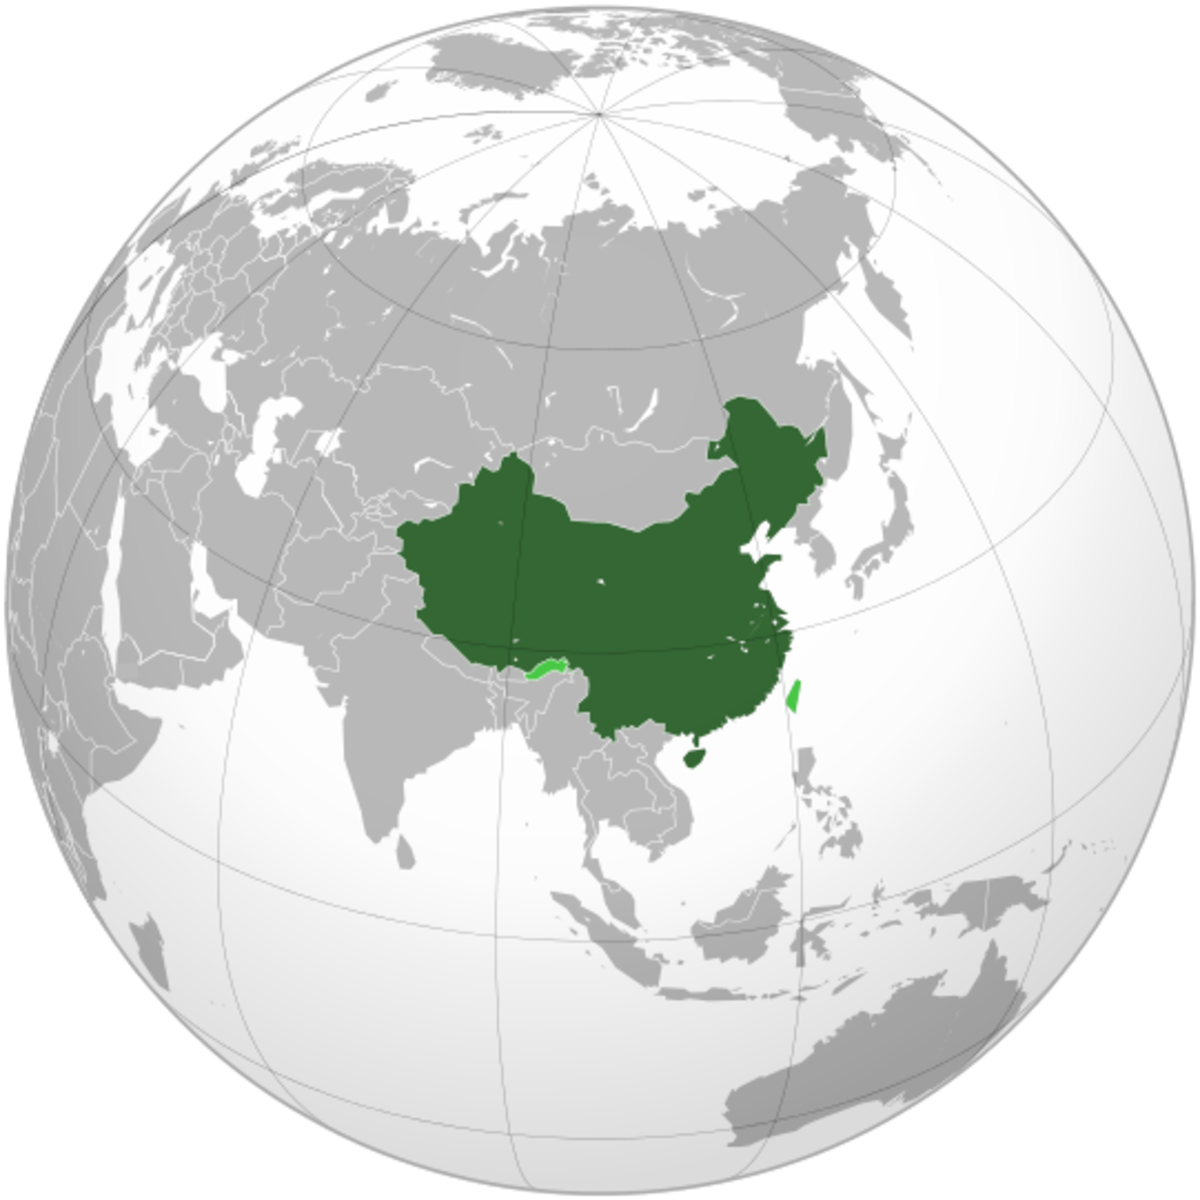 Map showing China's location